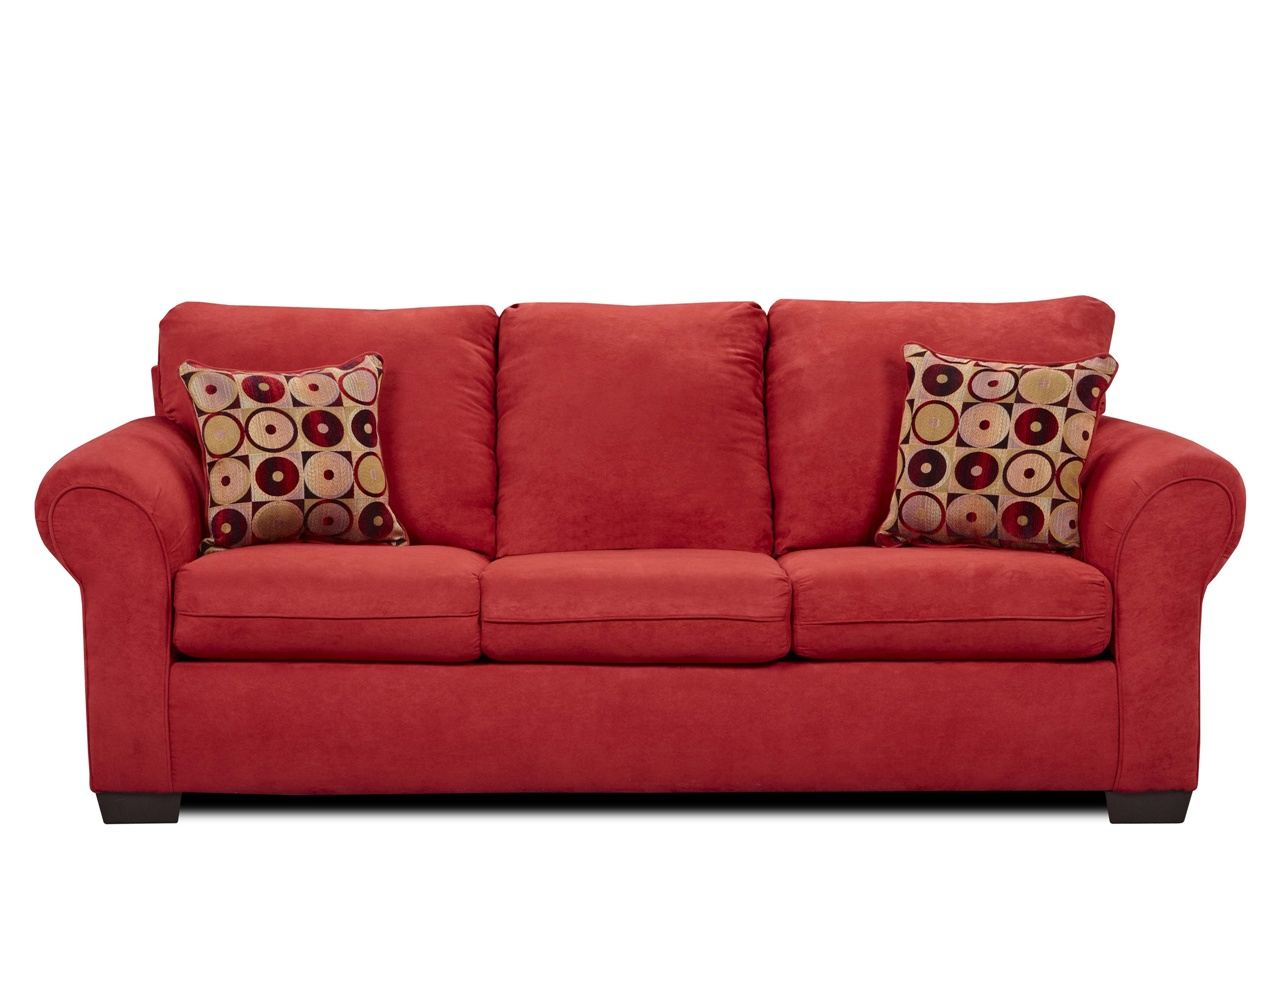 Cute cheapest couches available online couch sofa for Cheap quality couches